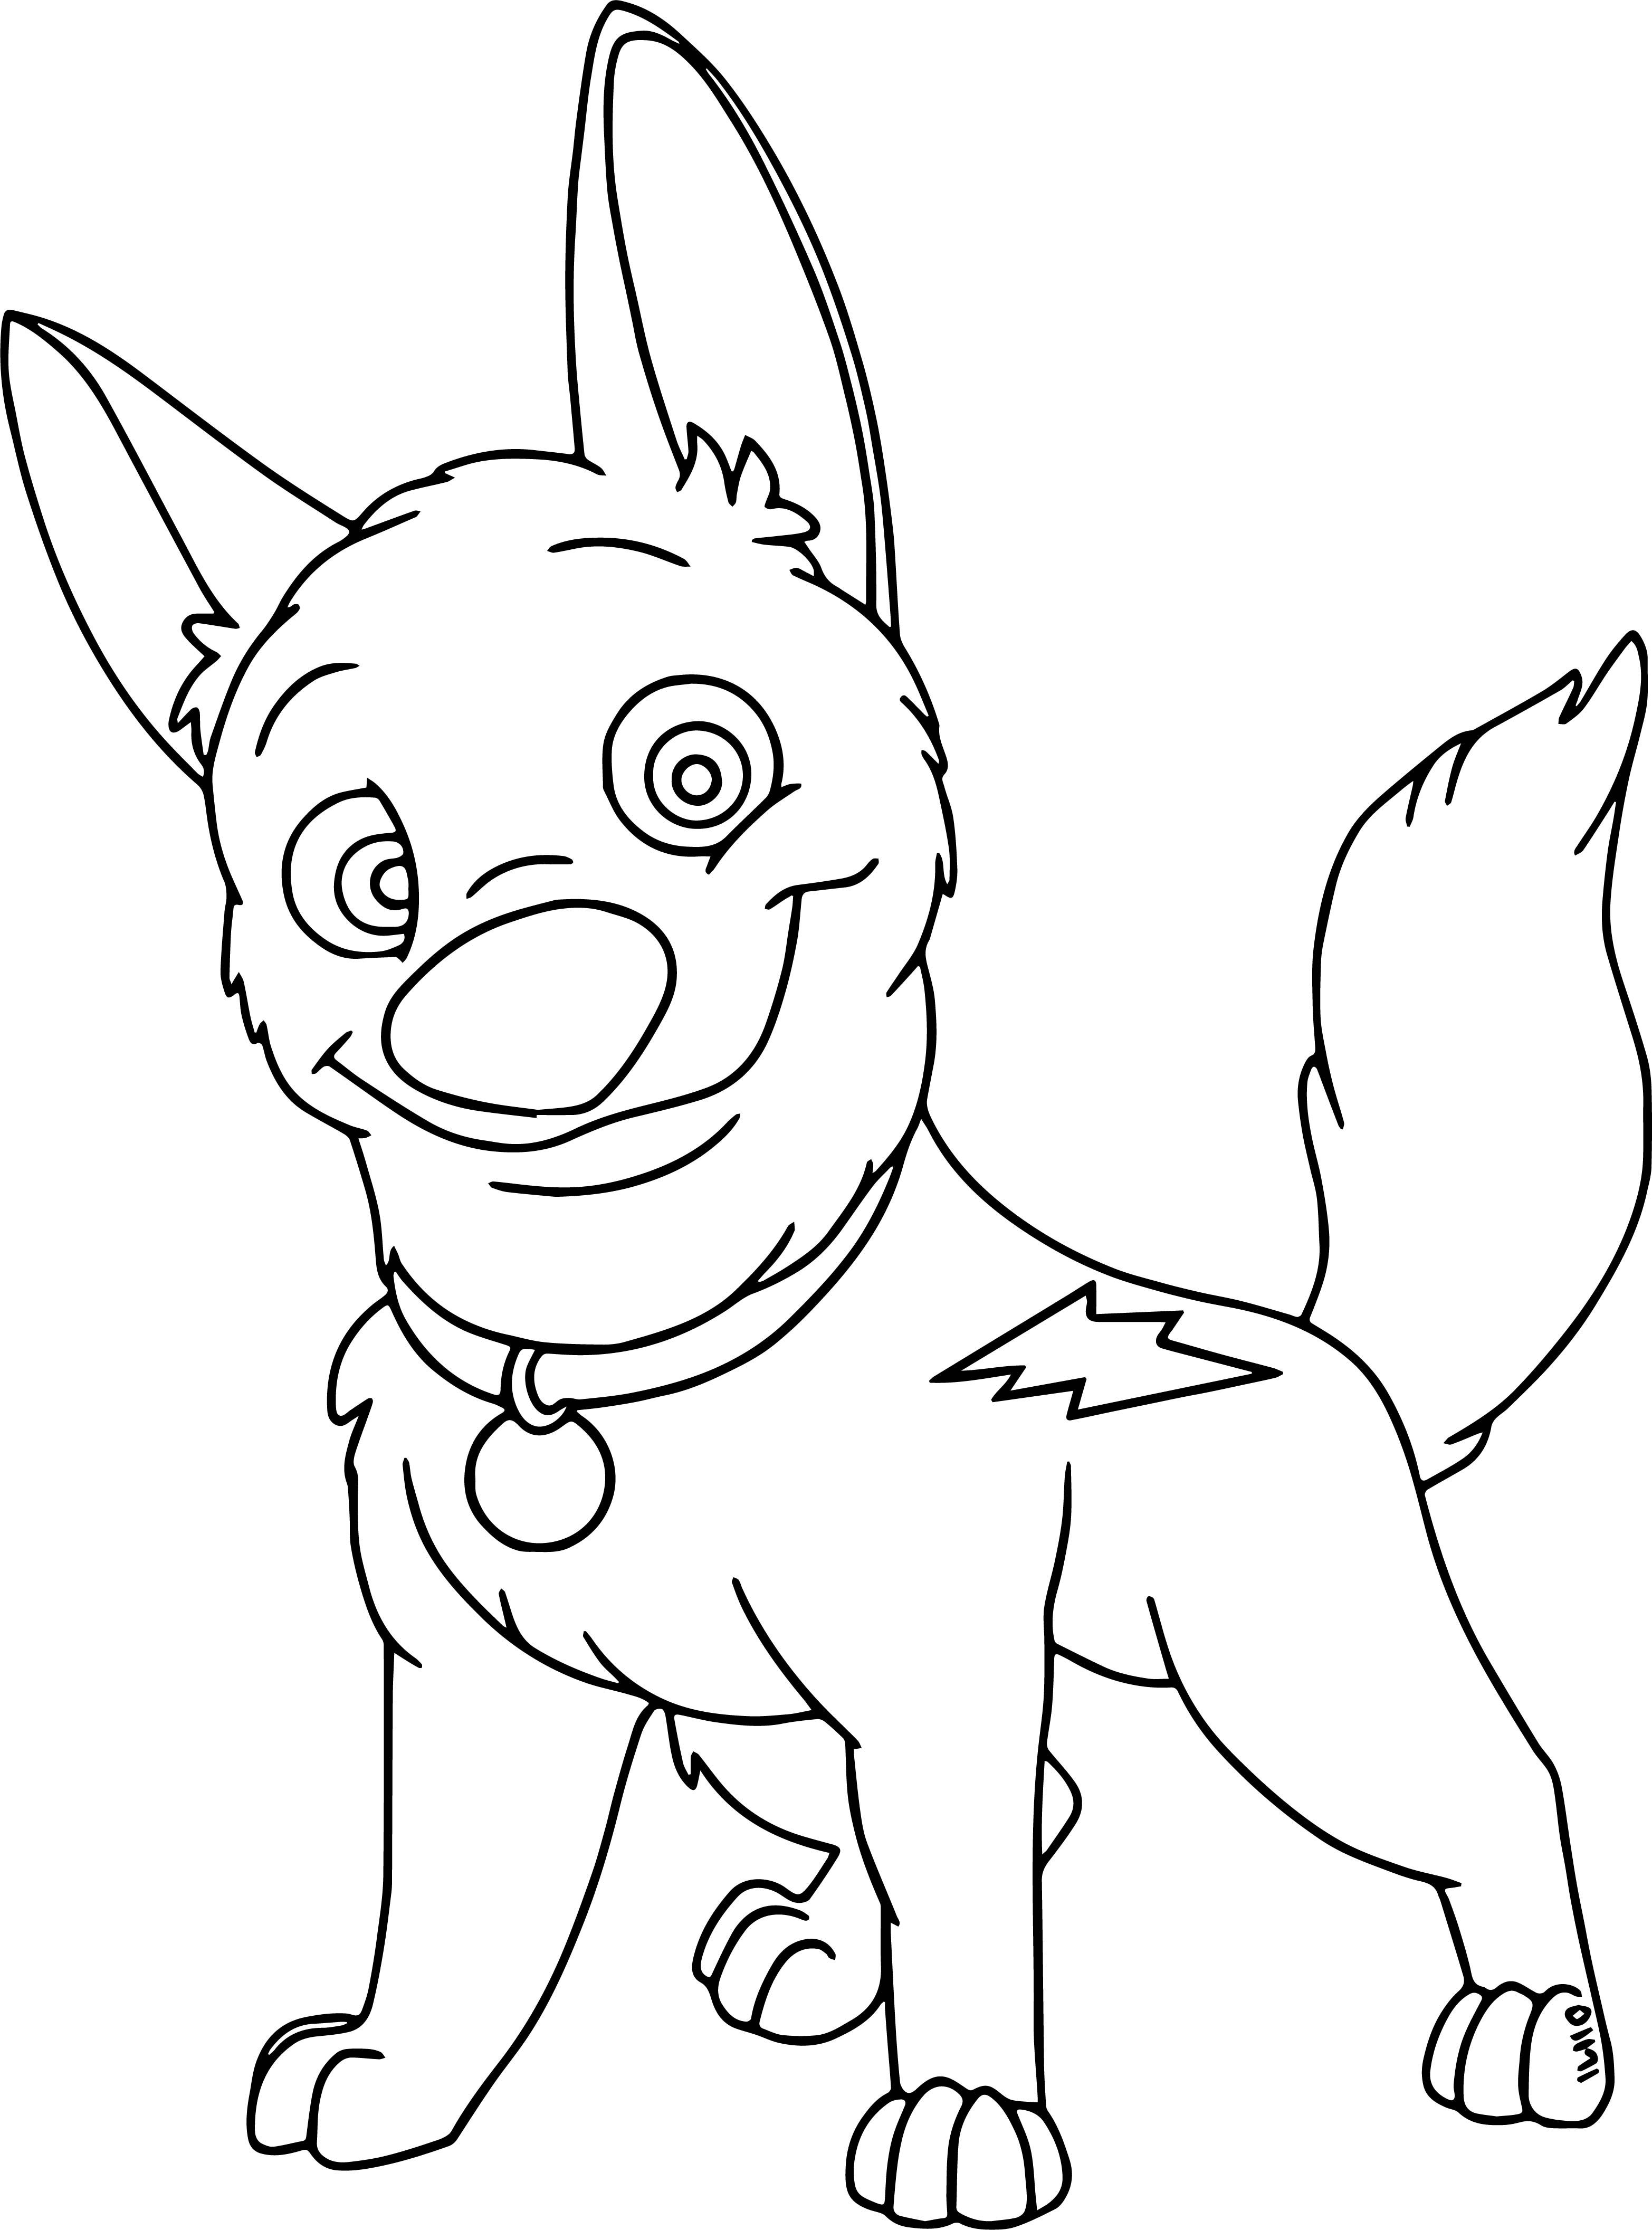 Cool Cute Bolt Dog Coloring Pages Dog Coloring Page Coloring Books Cinderella Coloring Pages